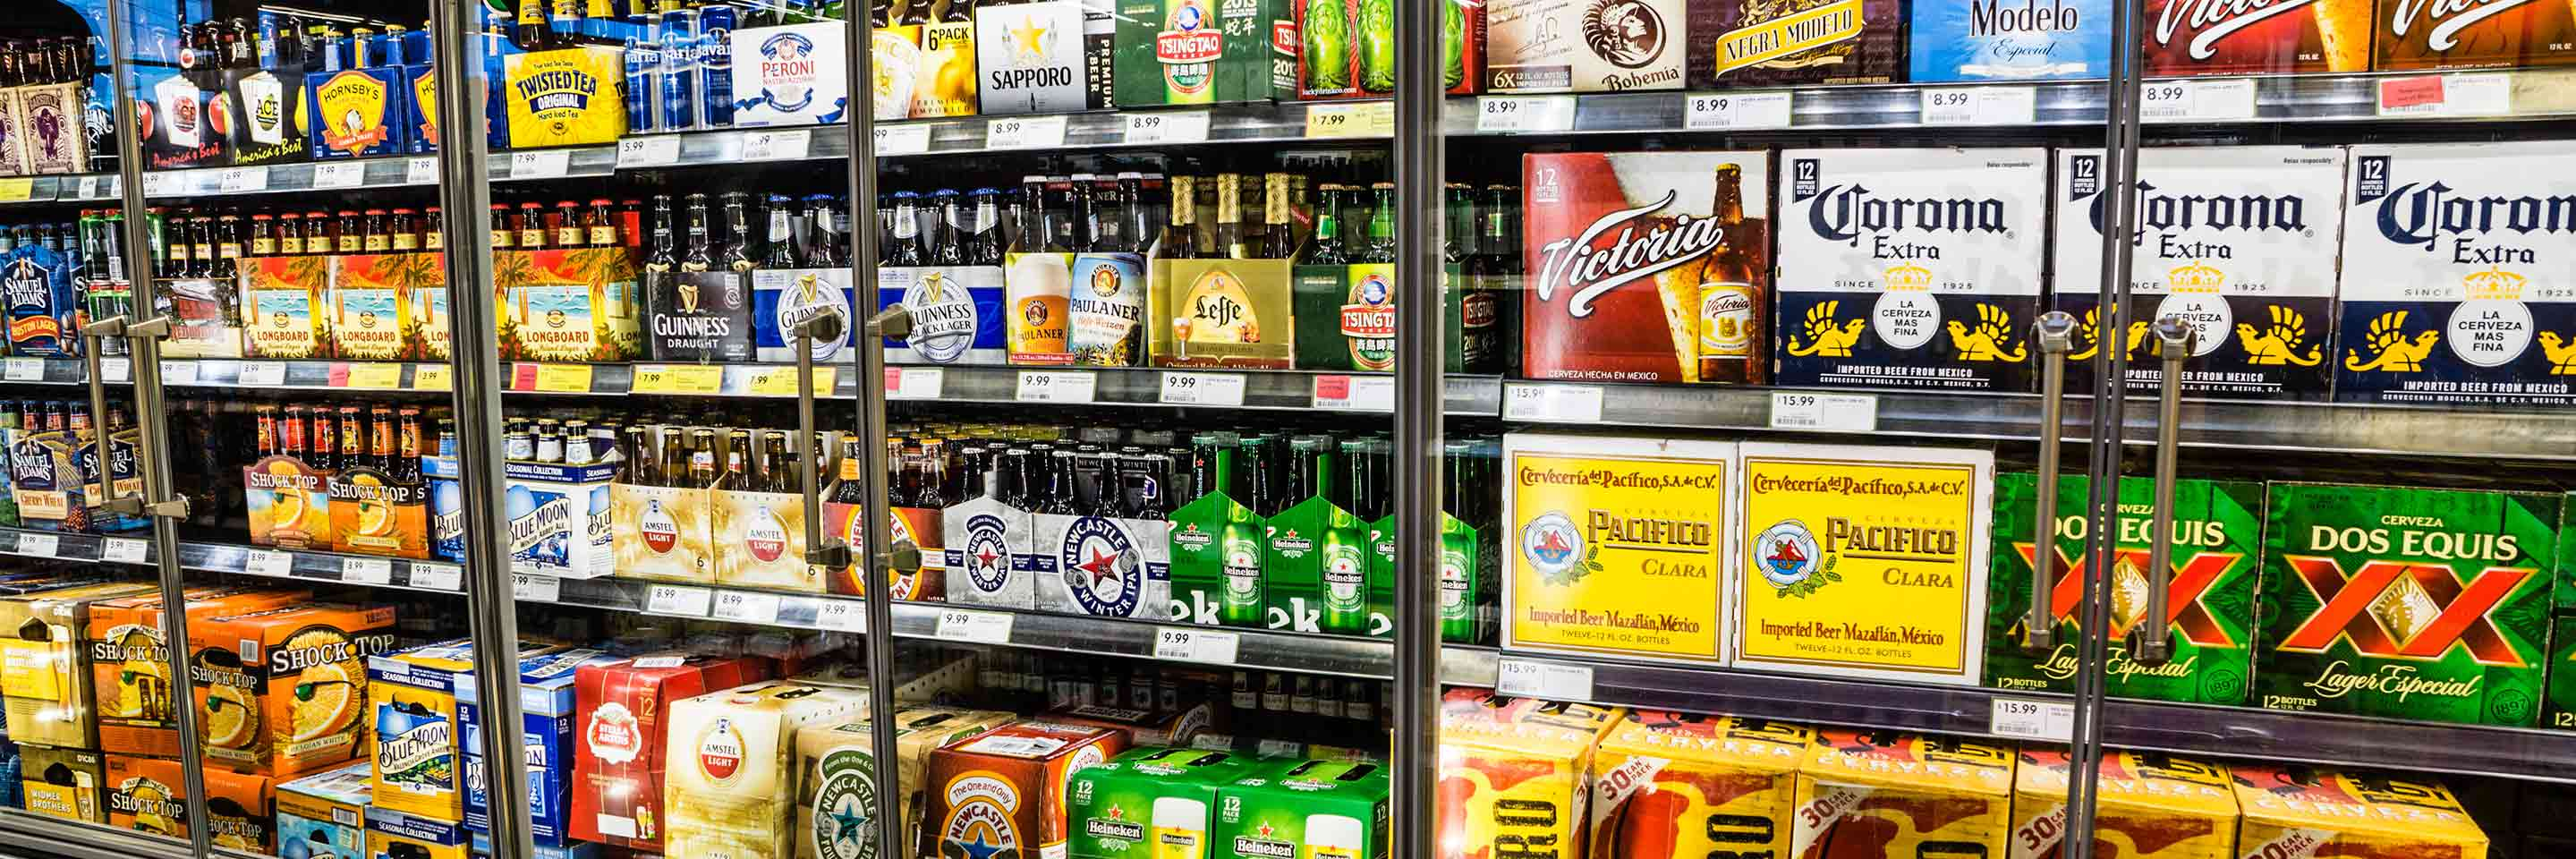 Stacks of beer and wine on shelves